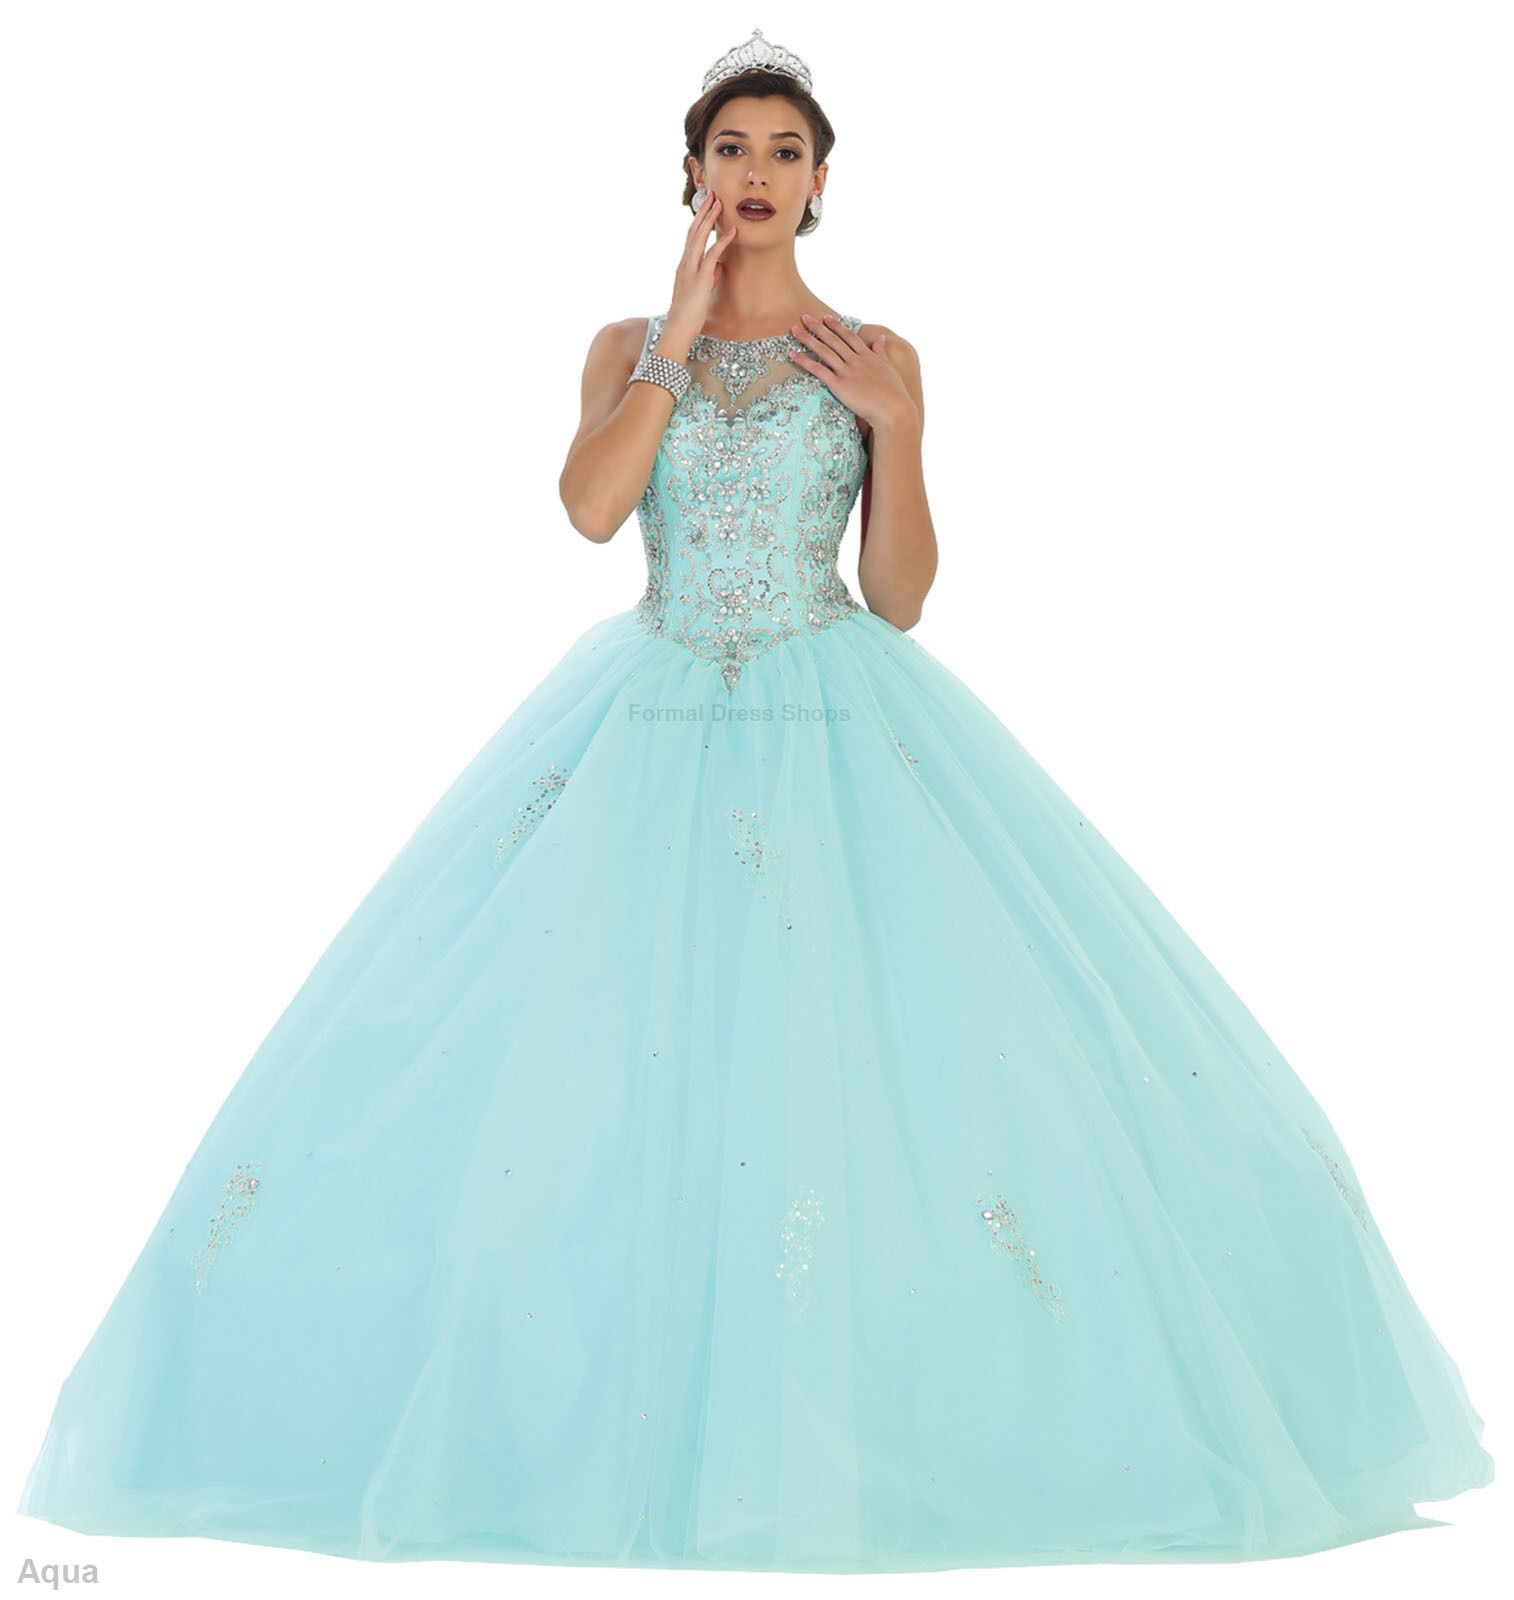 STUNNING QUINCEANERA RED CARPET DRESSES SWEET 16 PROM